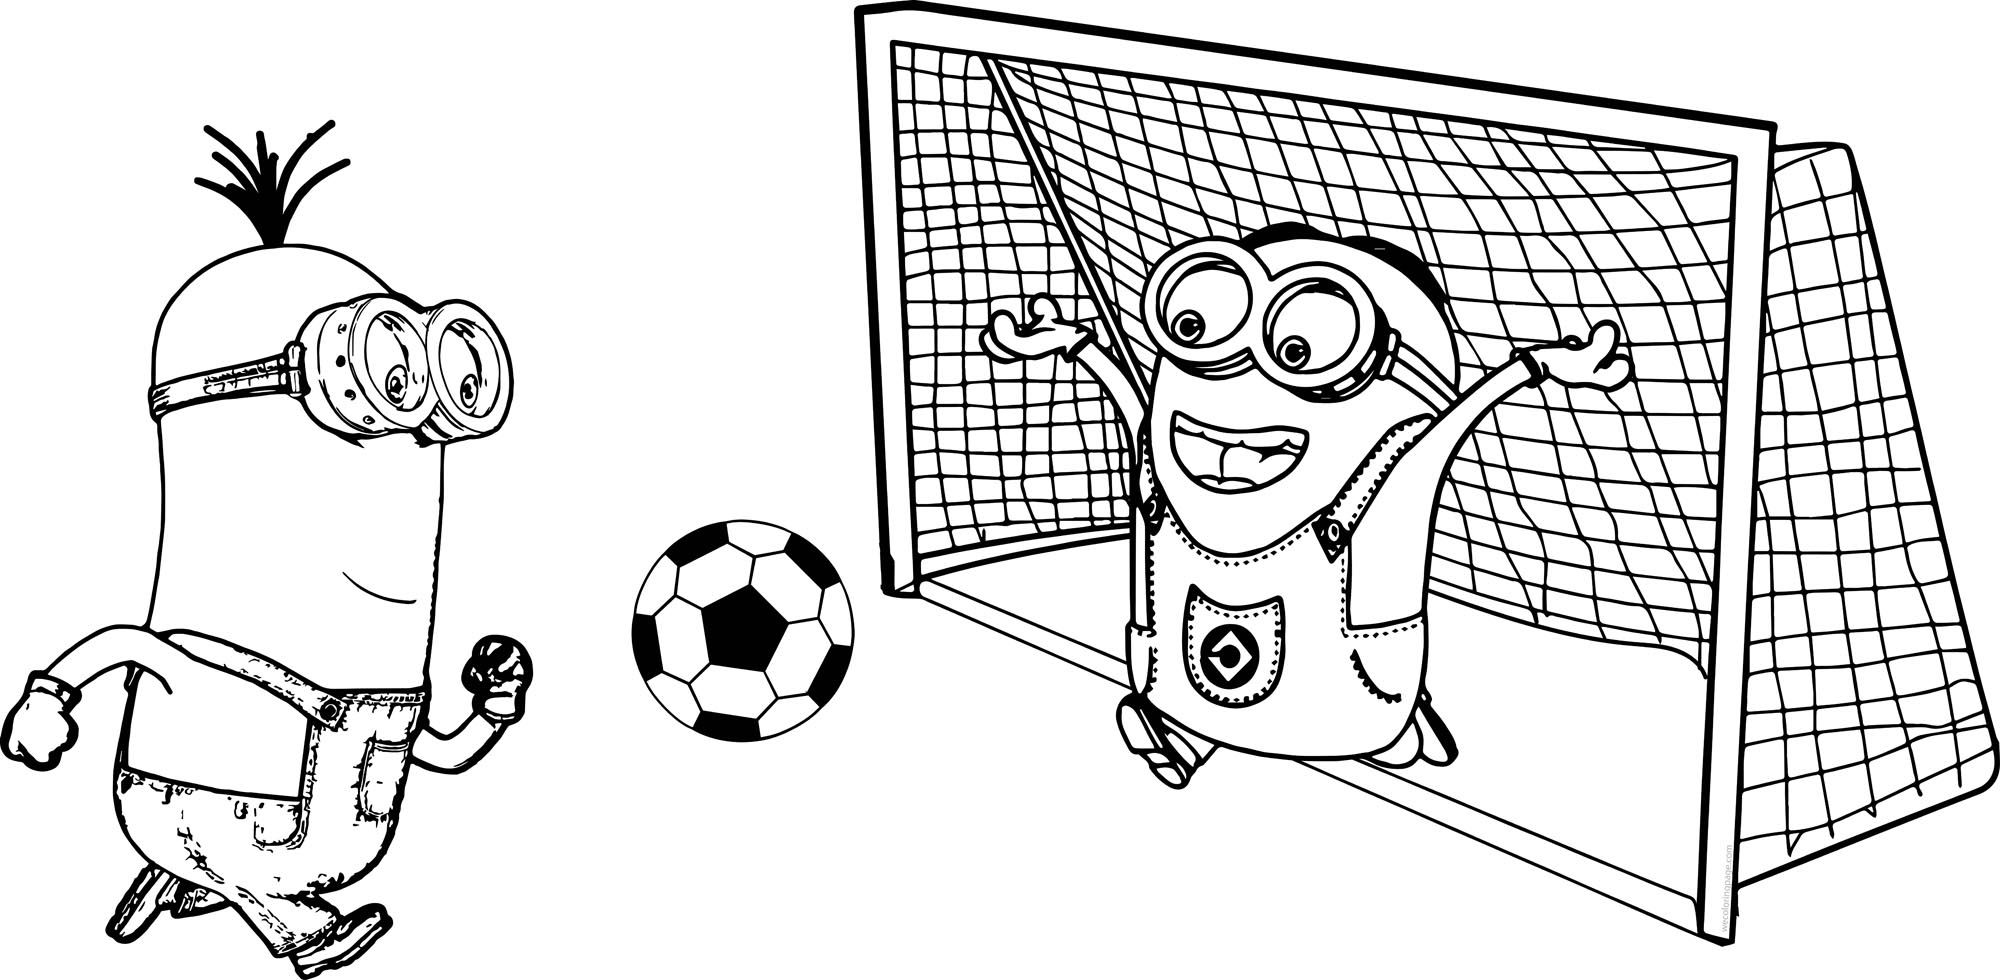 Cool Minion Kevin And Dave Playing Soccer Picture Coloring Page